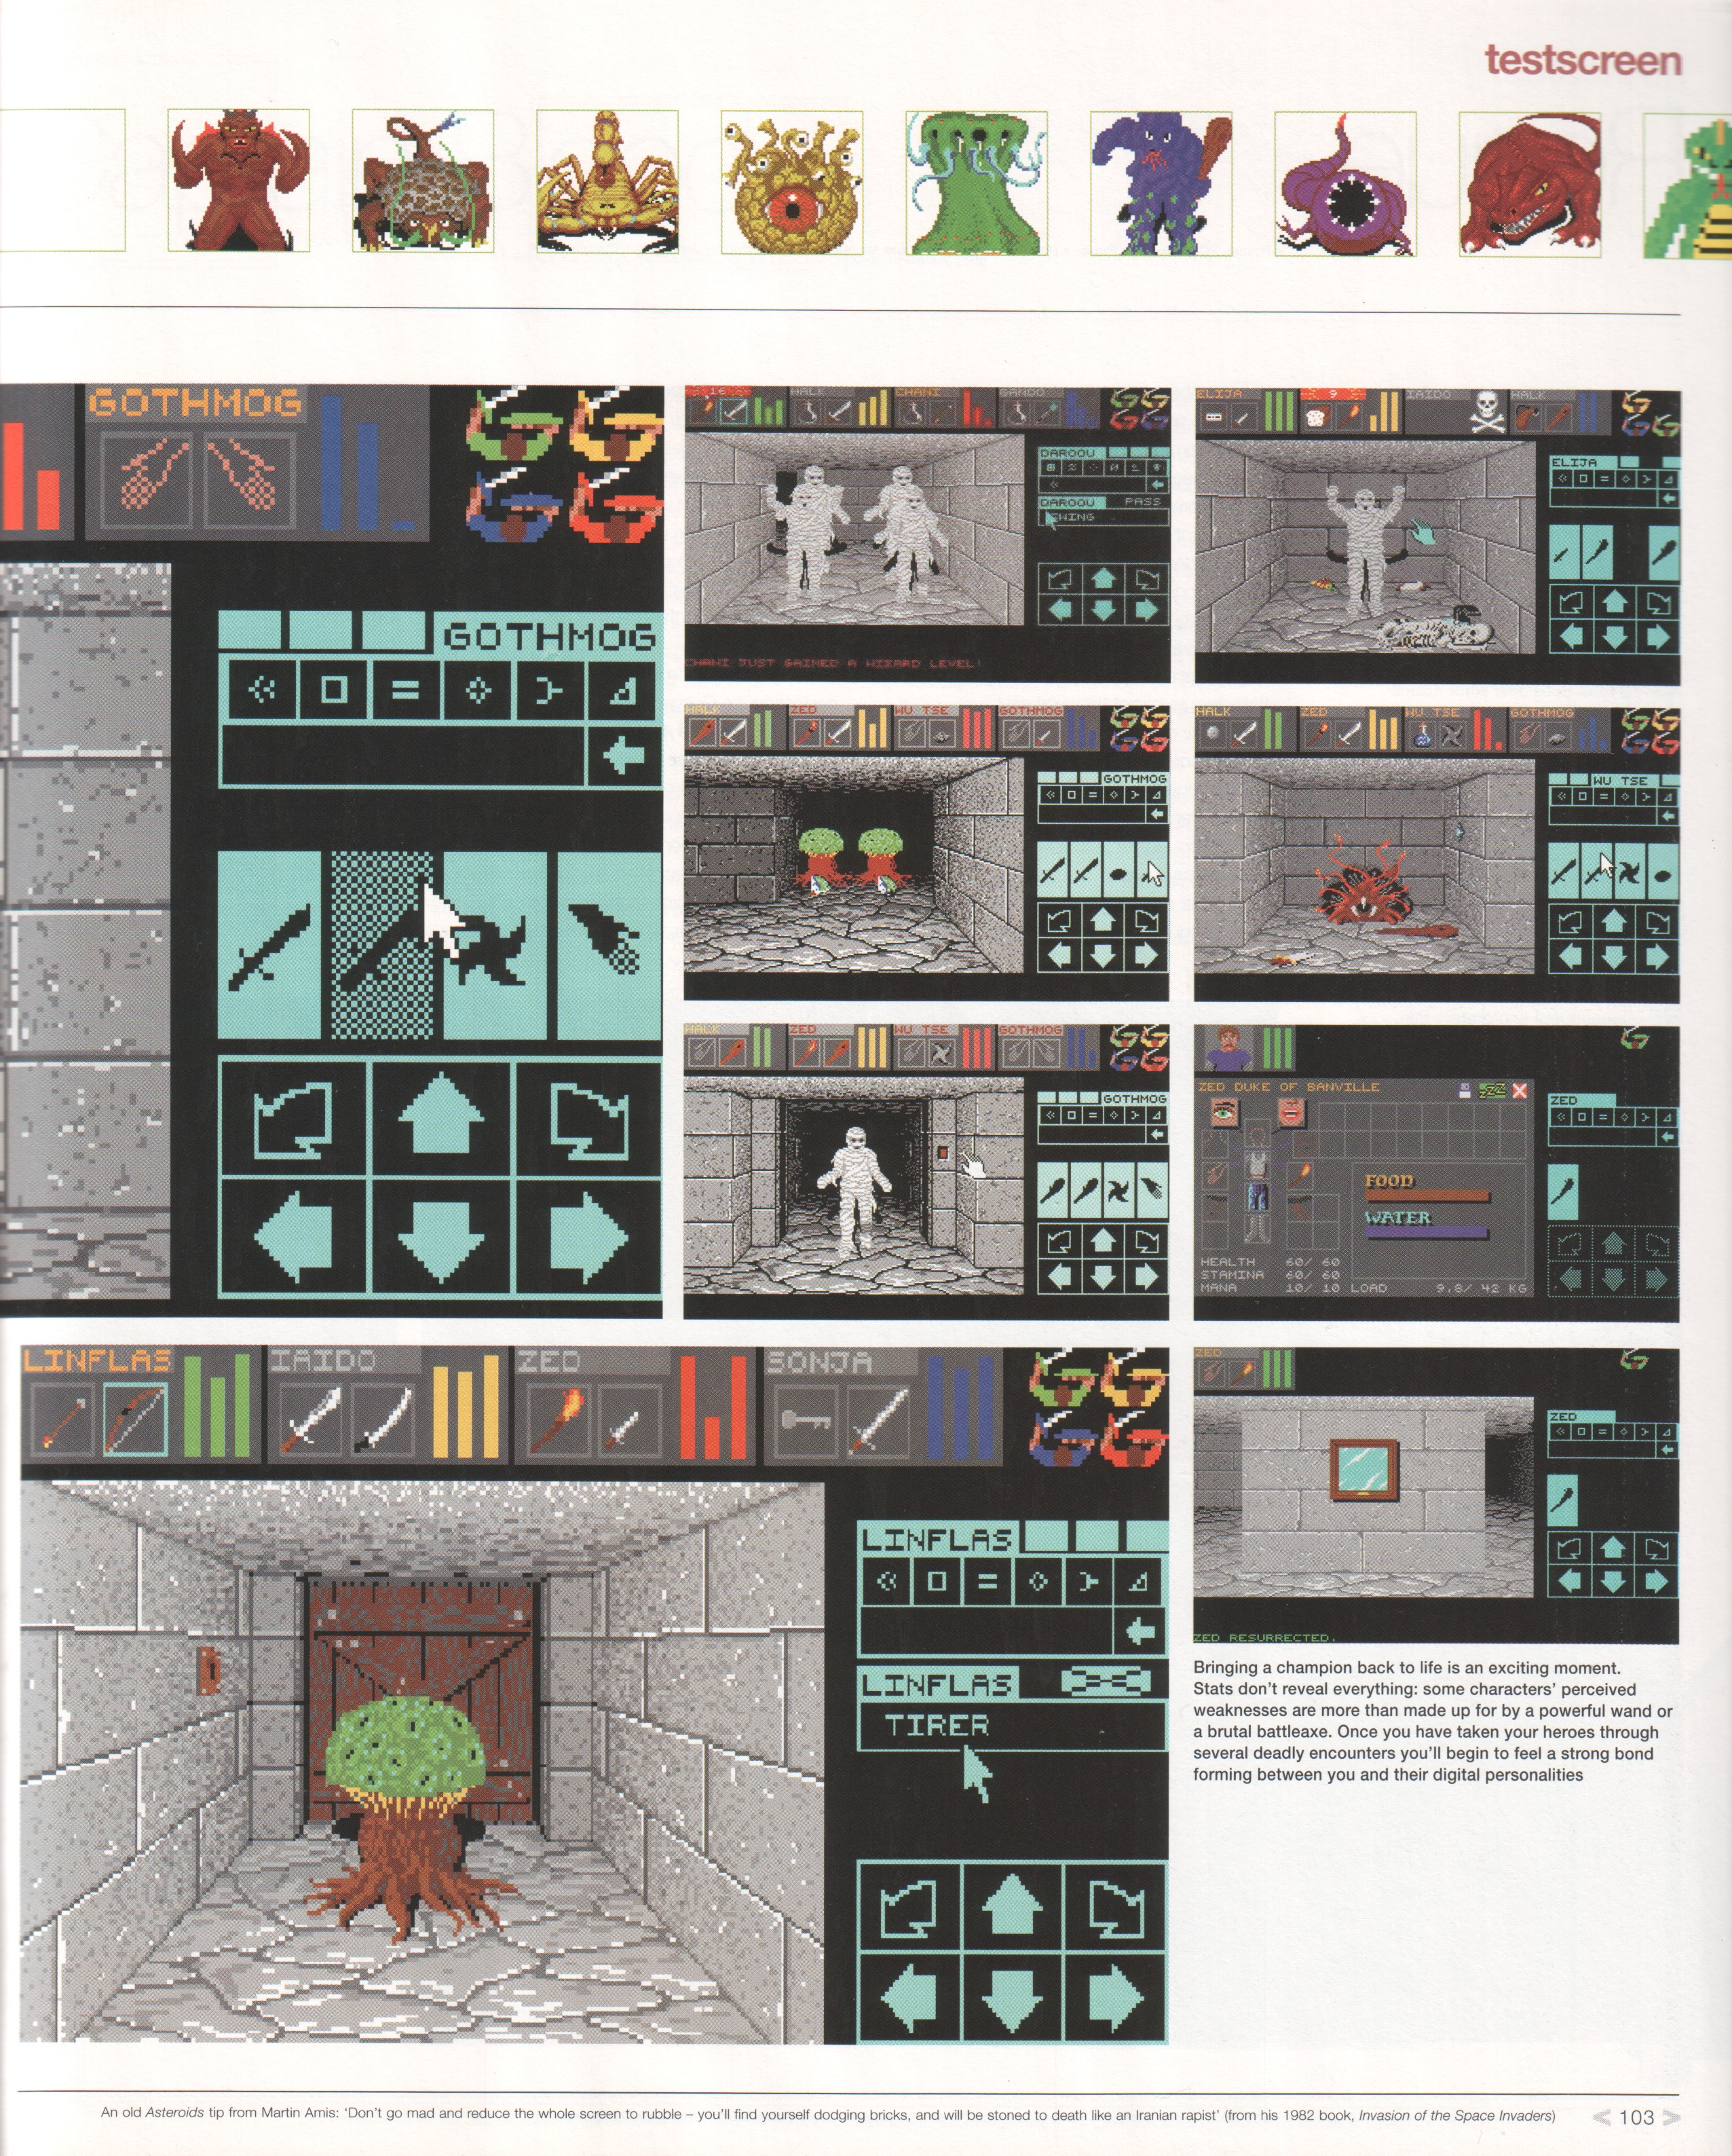 Dungeon Master Review published in British magazine 'Edge Presents Retro The Guide To Classic Videogame Playing And Collecting', December 2002, Page 103